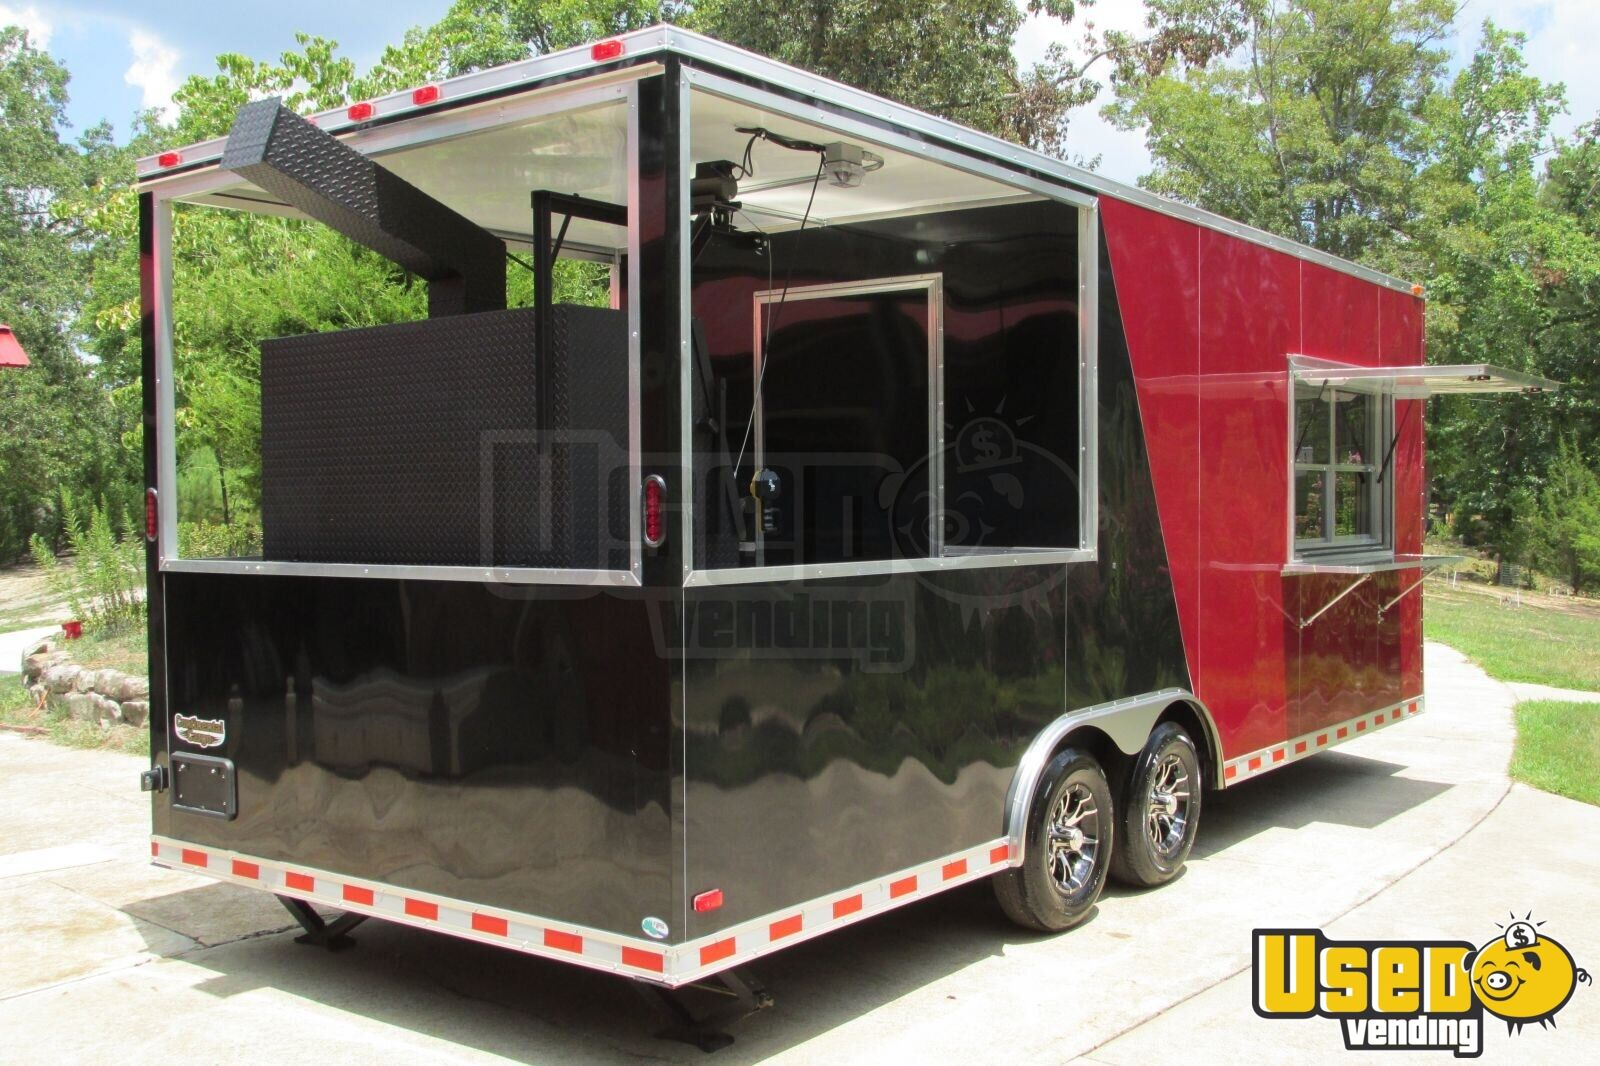 2015 - 22' x 8.5' Custom Built BBQ Porch Concession Trailer - 4